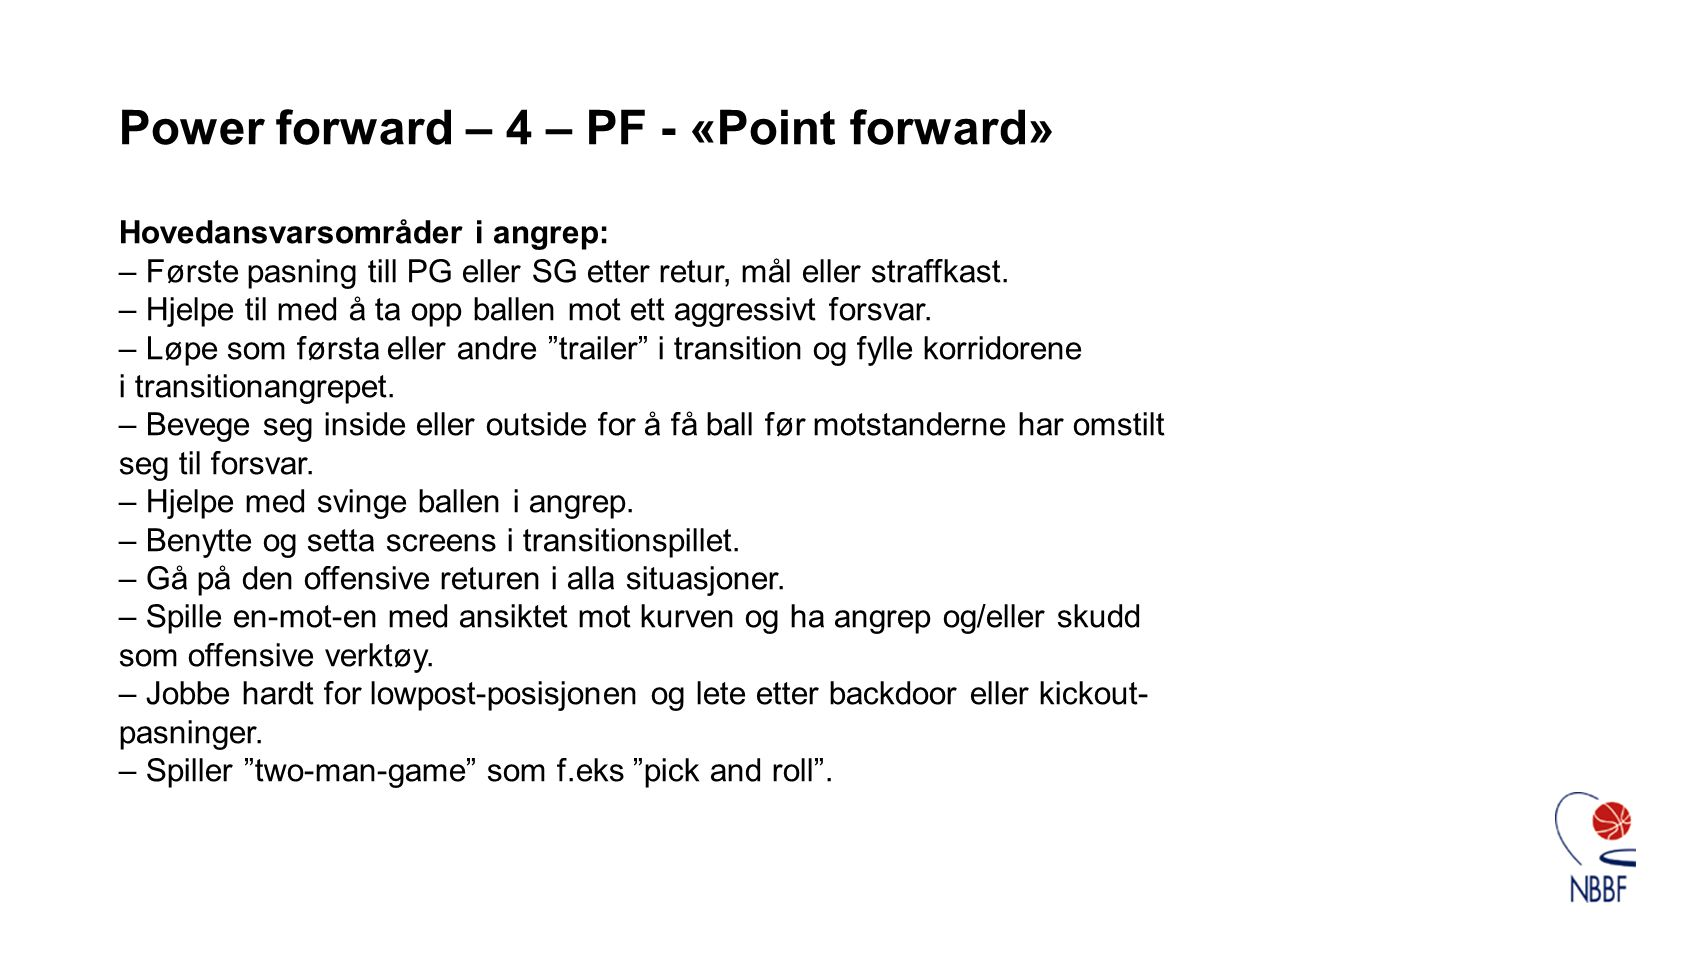 Power forward – 4 – PF - «Point forward»